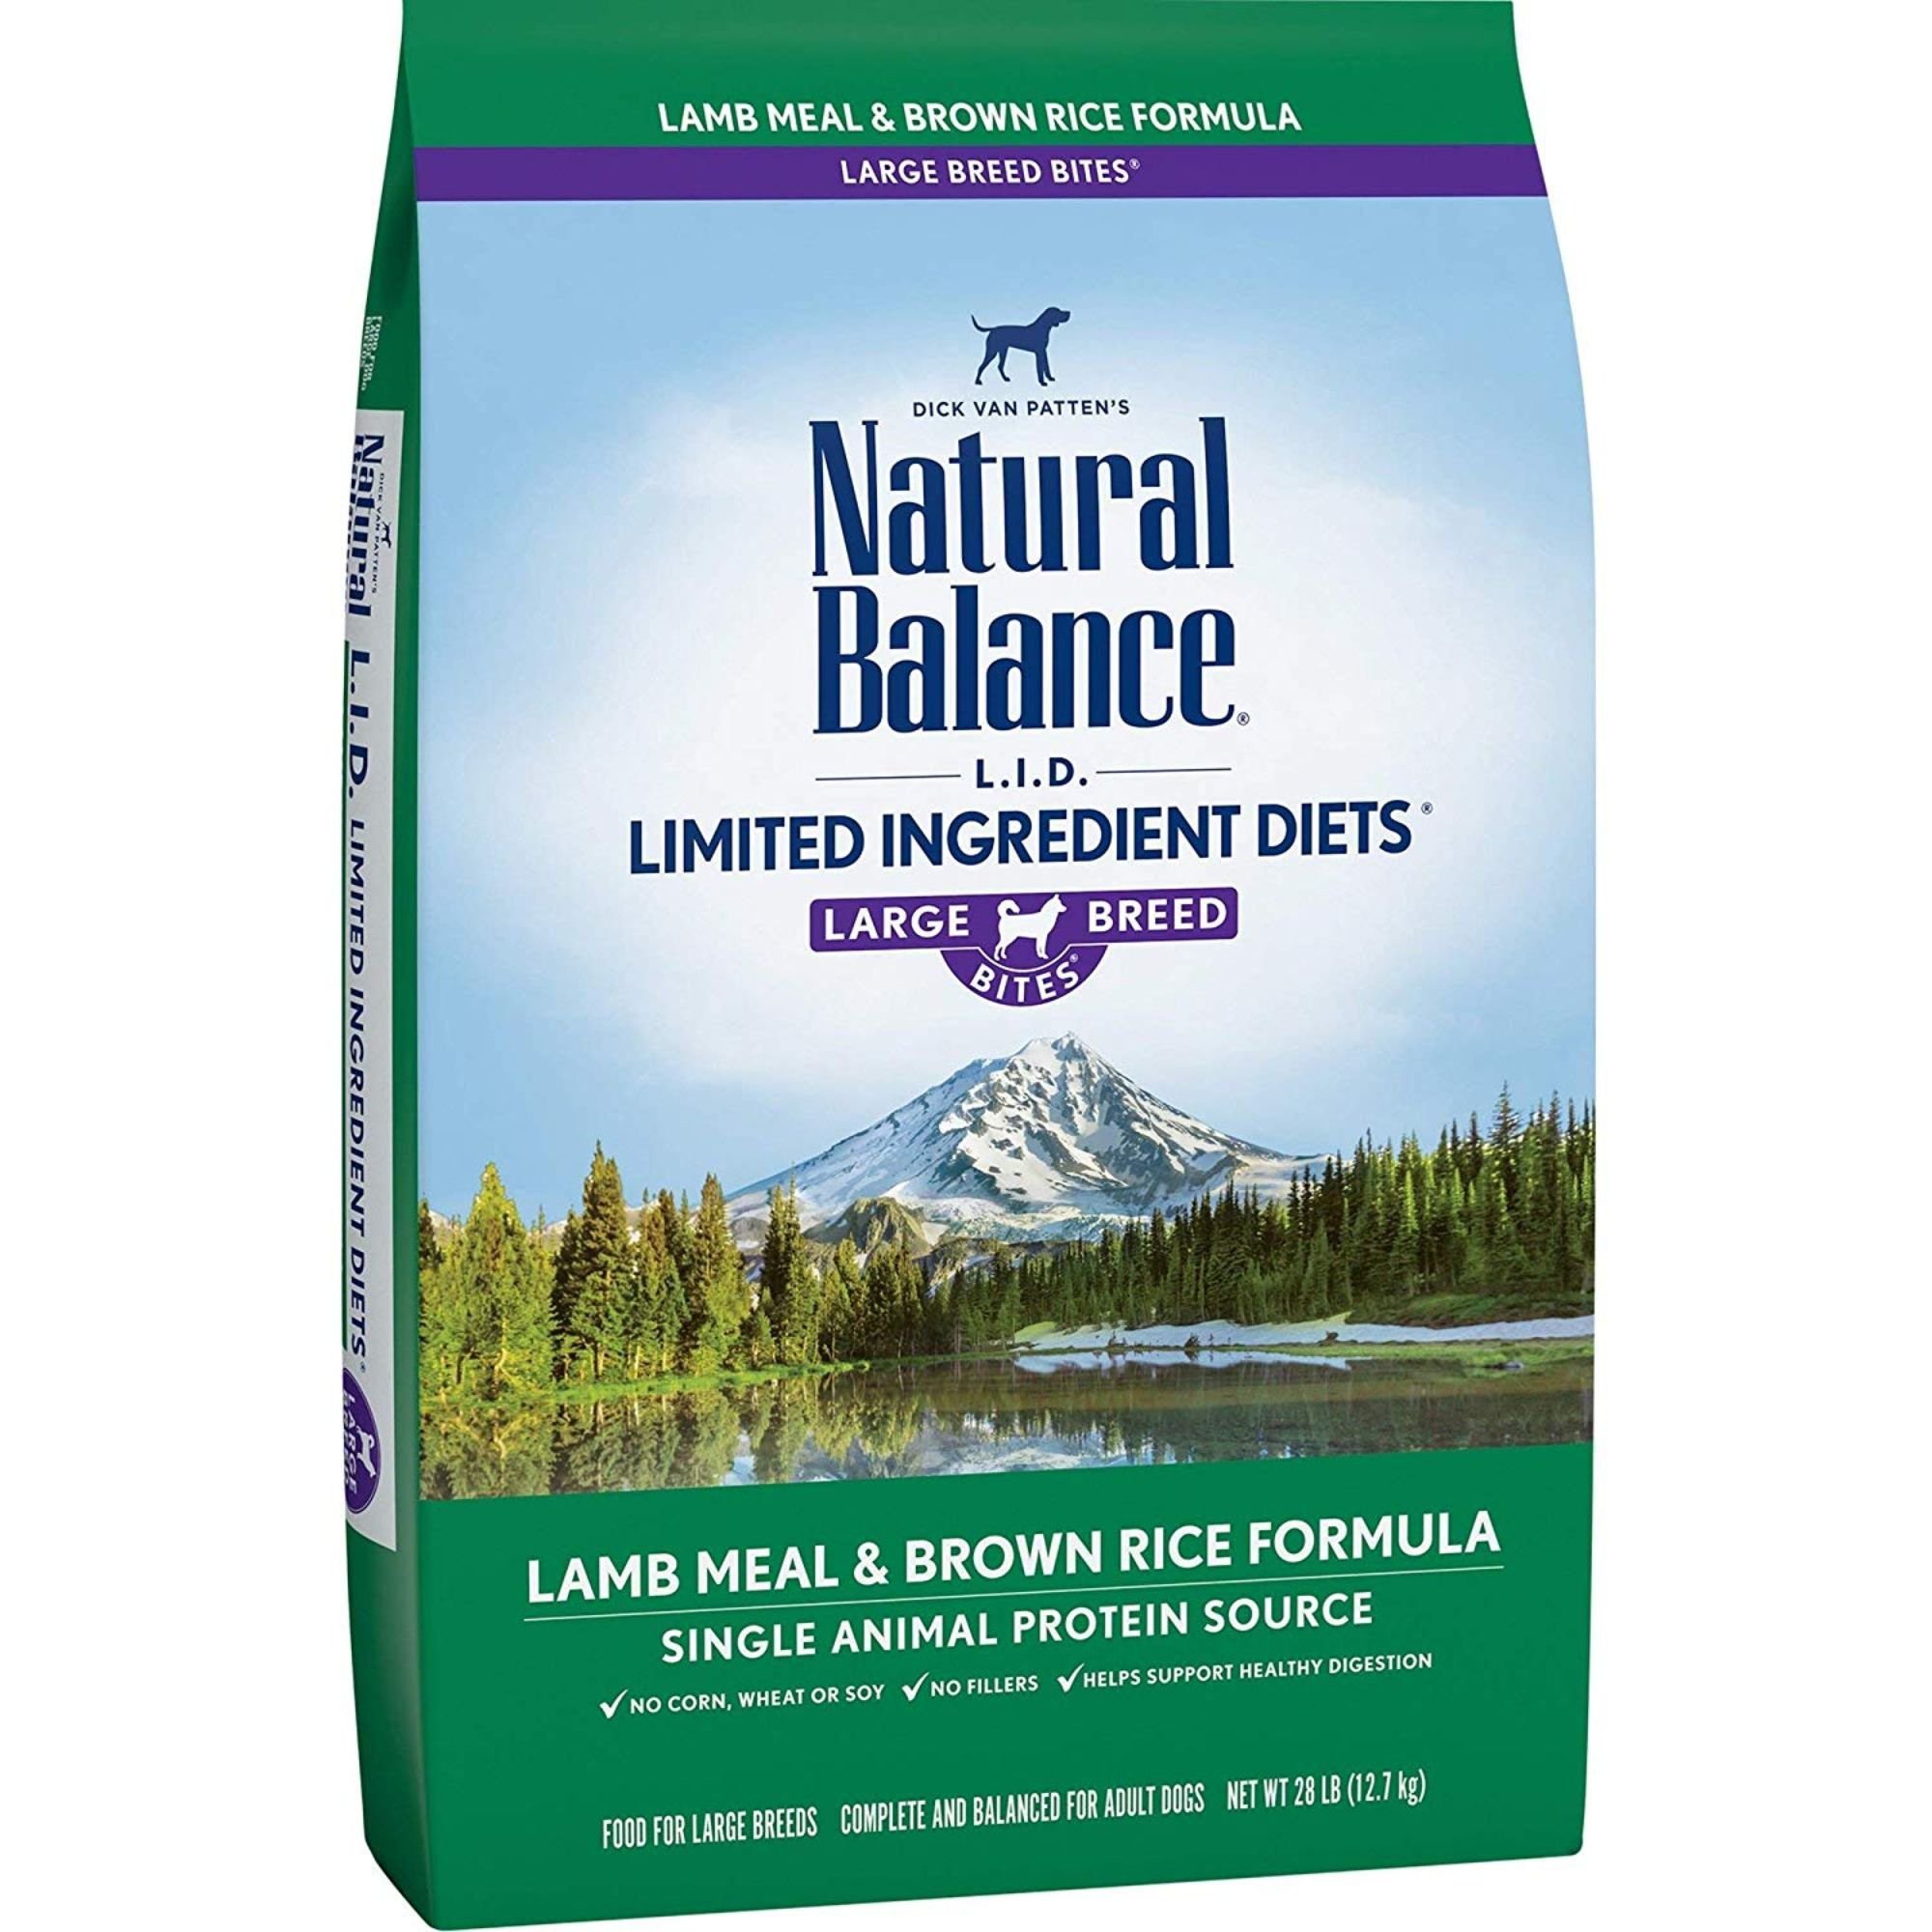 Natural Balance L.I.D. Limited Ingredient Diets Lamb Meal